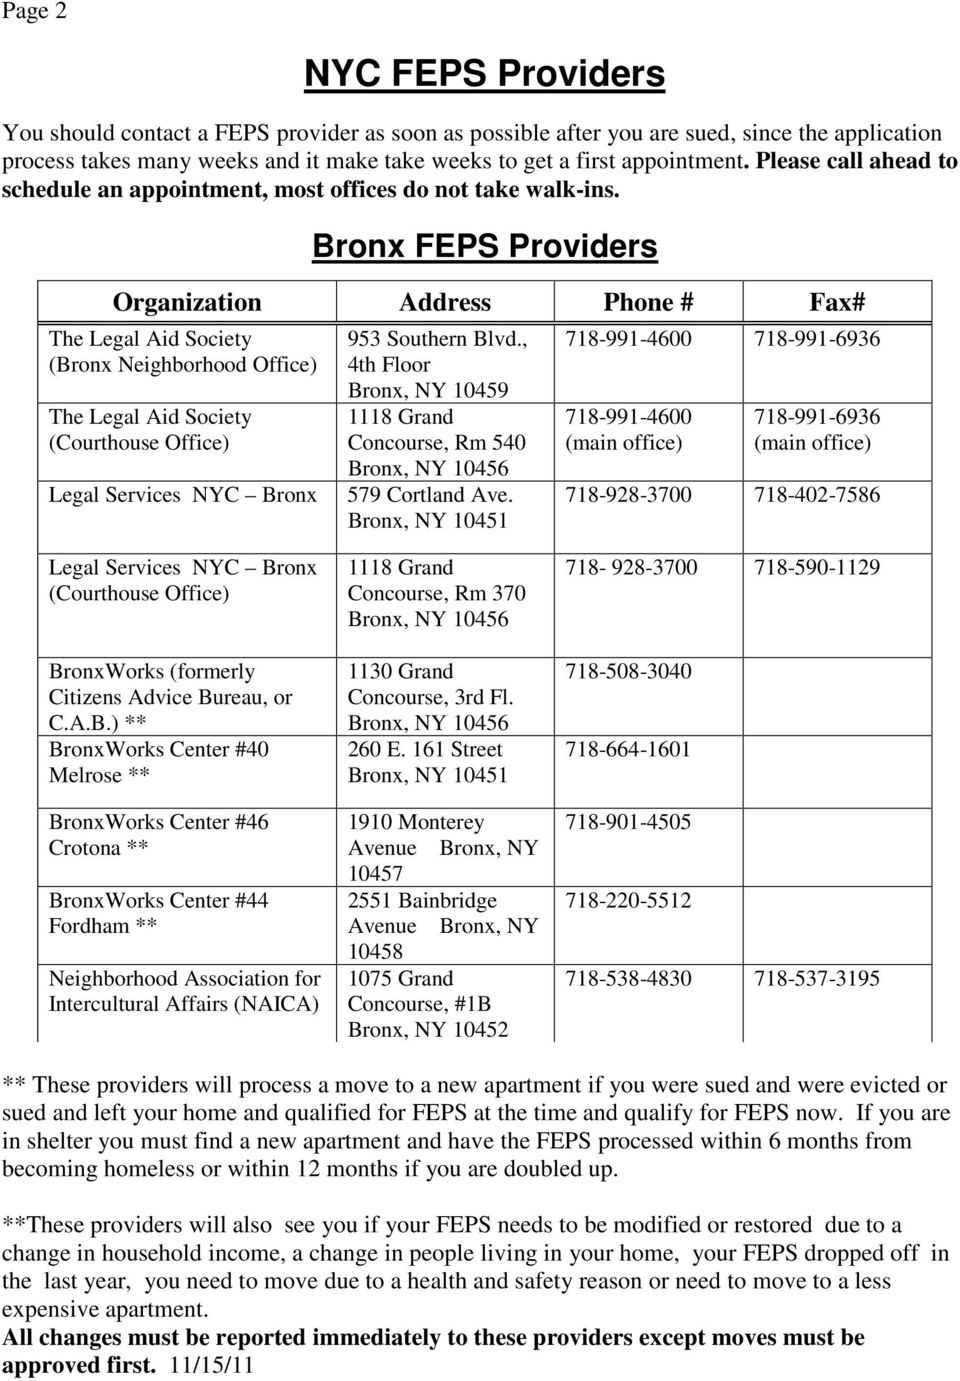 BASIC FACTS ABOUT THE FAMILY EVICTION PREVENTION SUPPLEMENT (FEPS